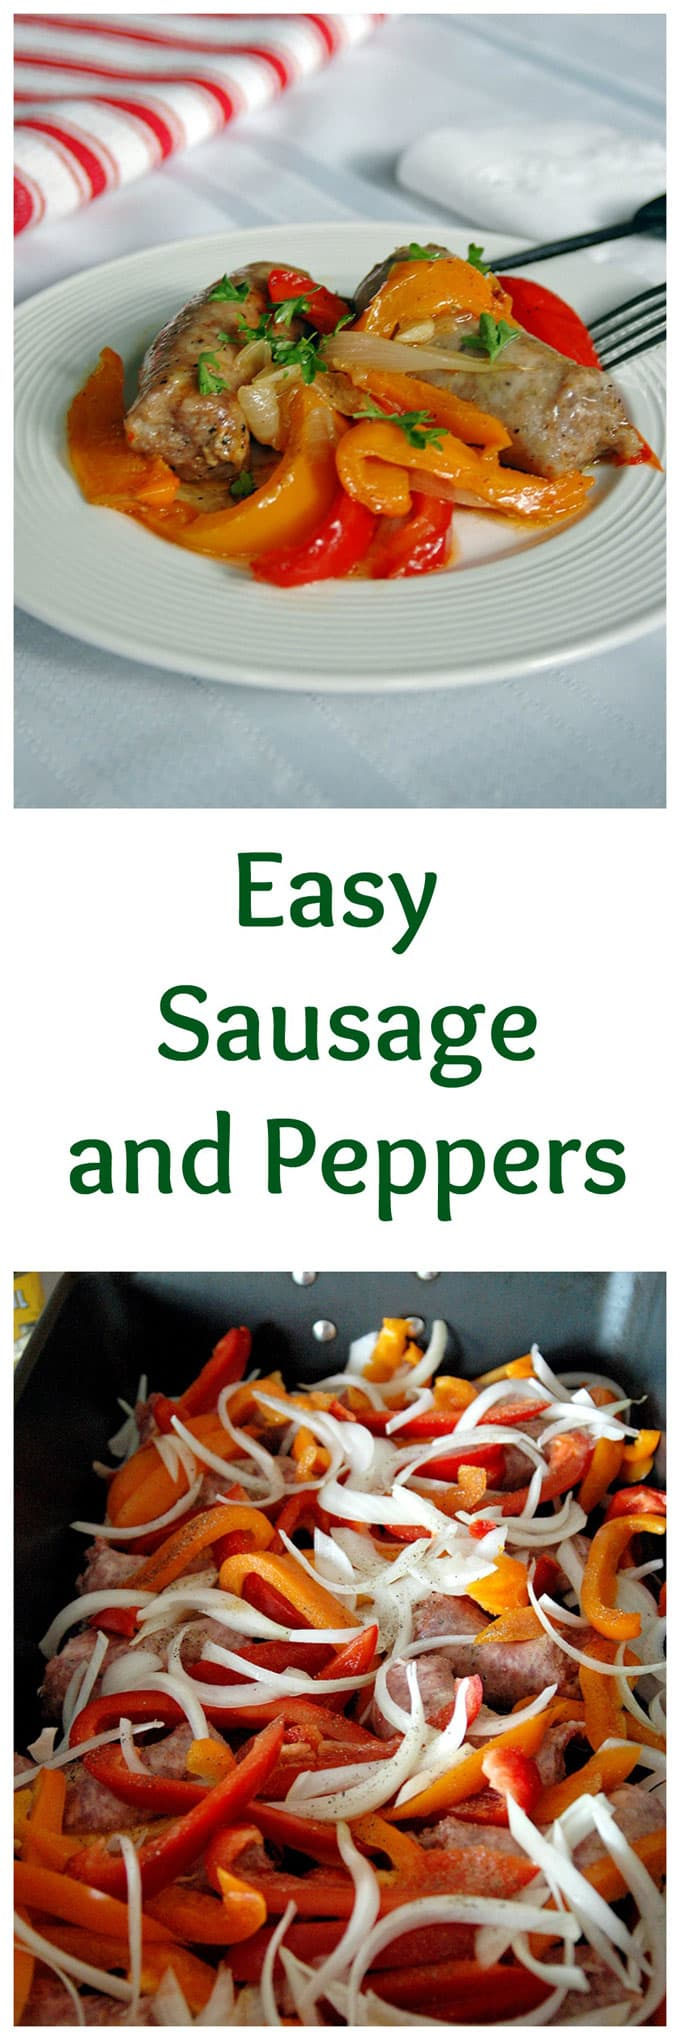 Easy Sausage and Peppers - oven baked and on your table in under an hour! A huge family favorite!